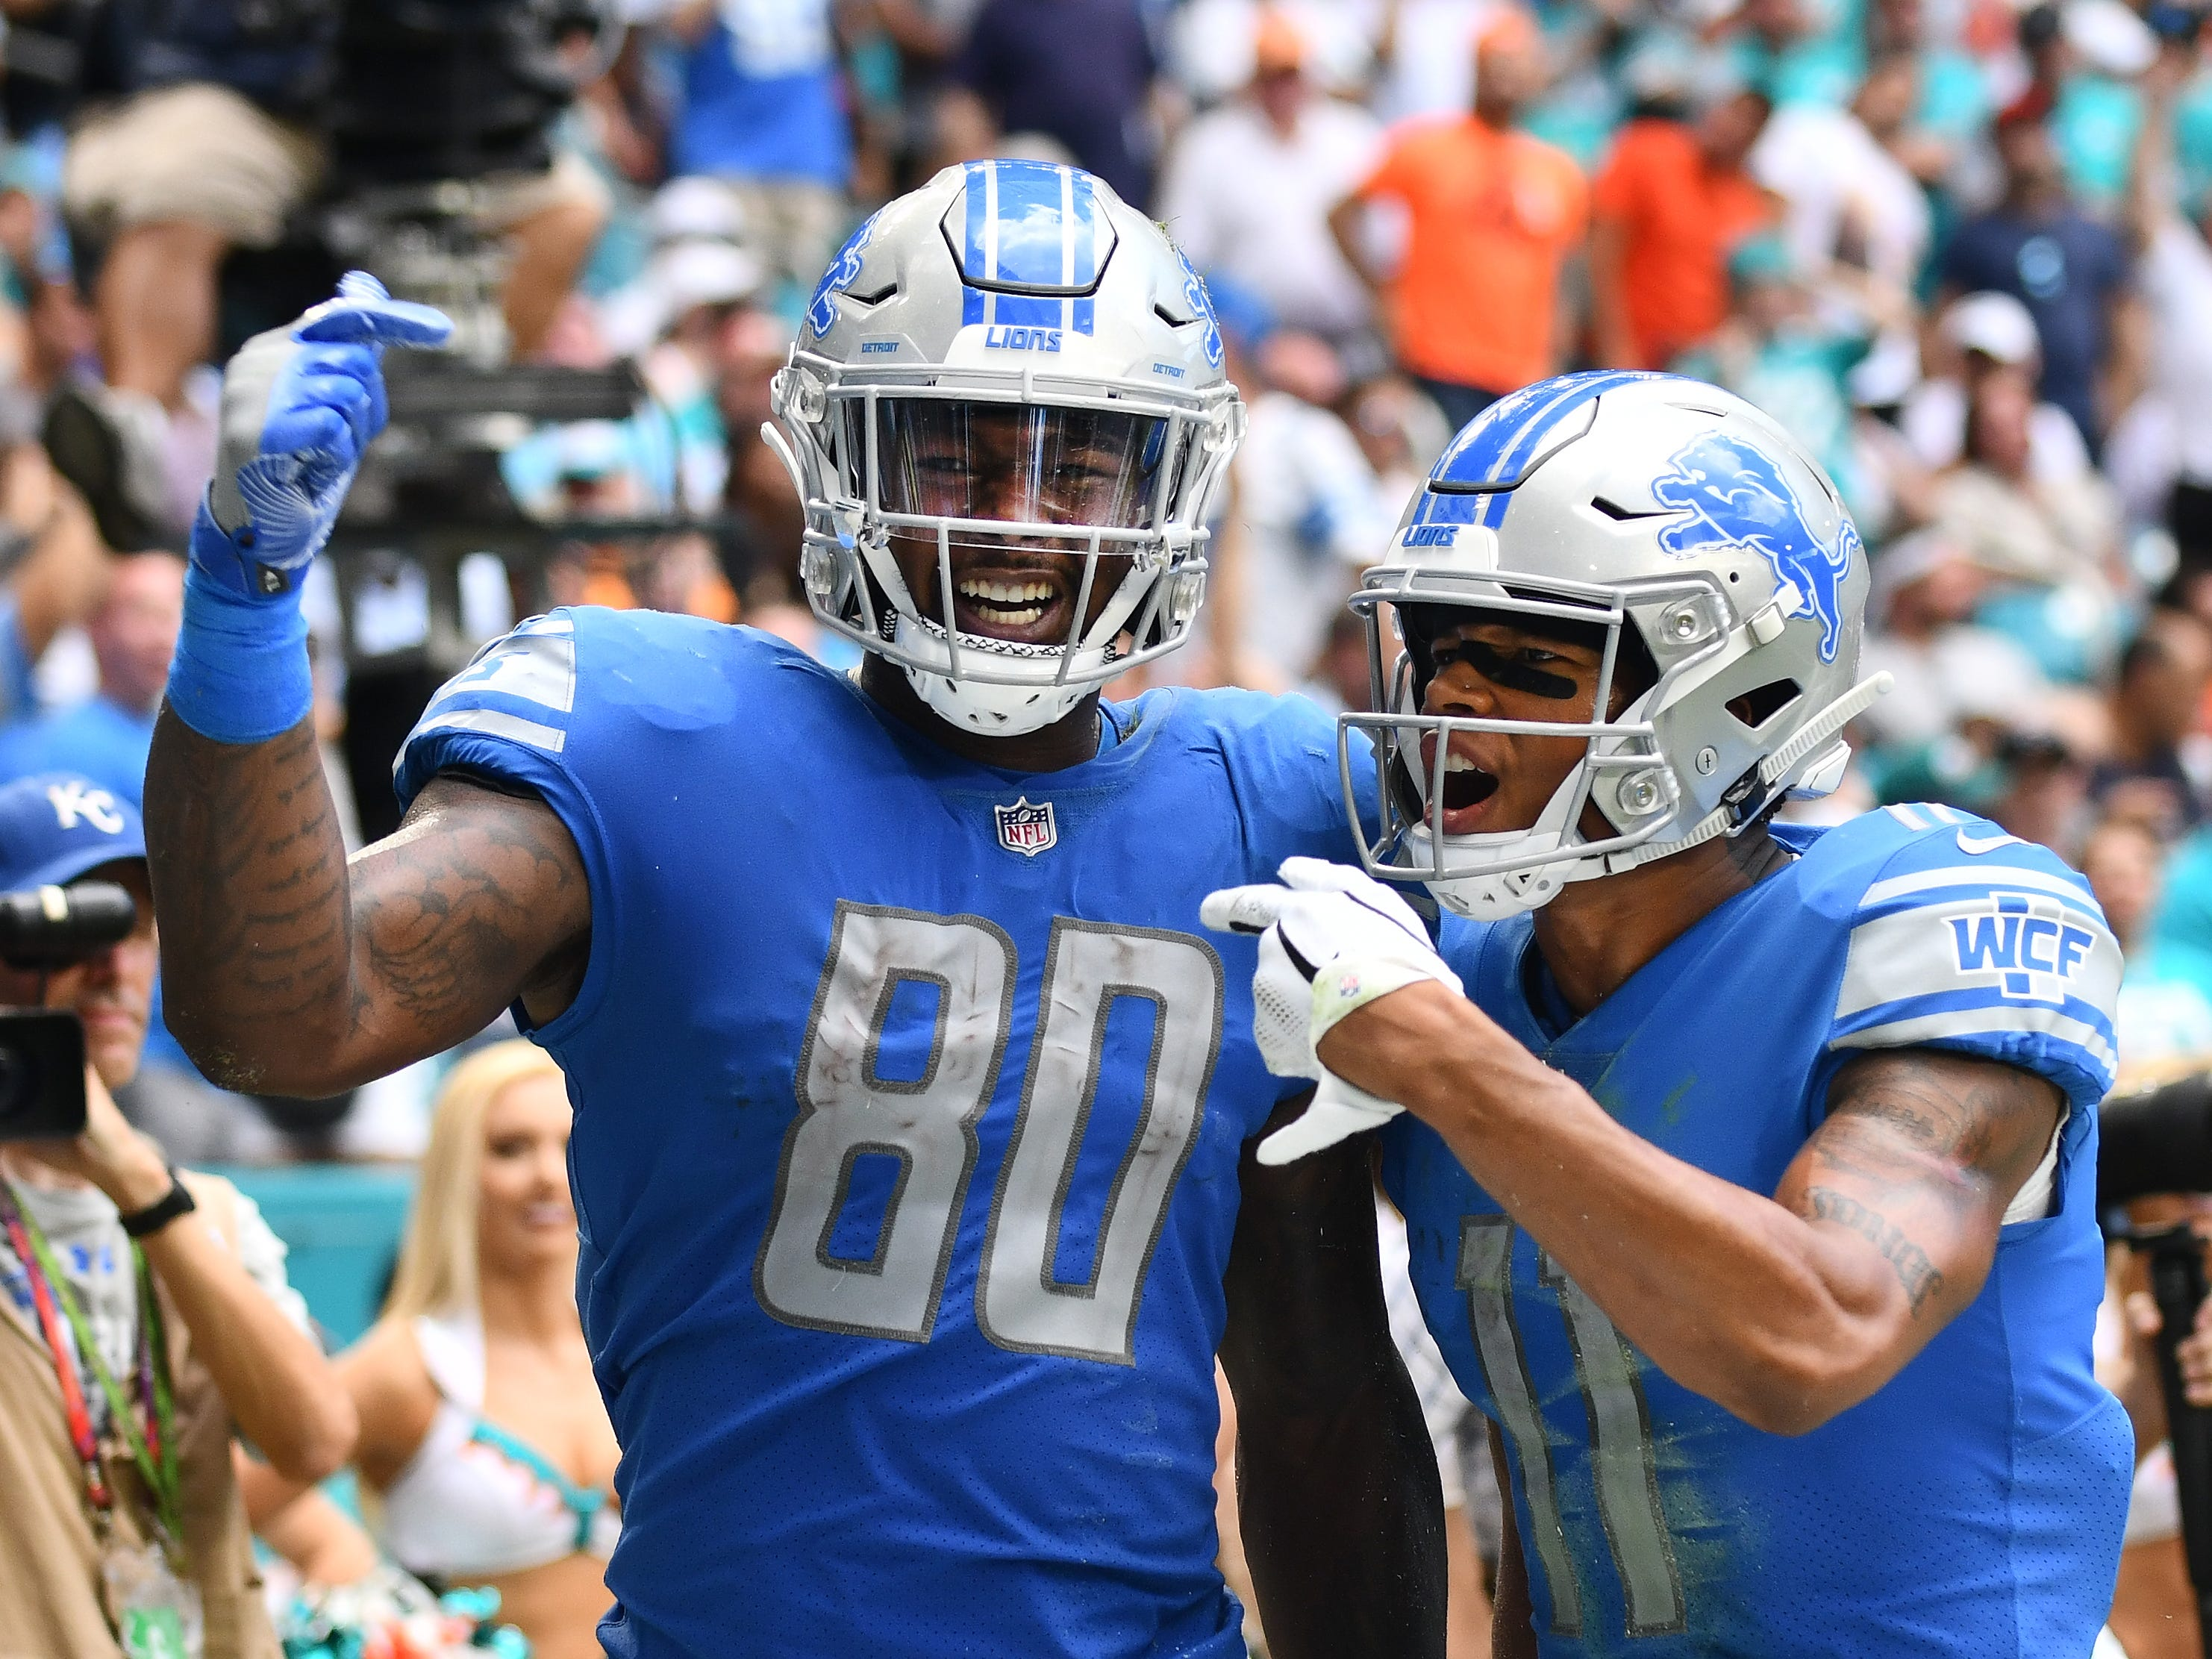 TE Mike Roberts: Roberts continues to be underrated as a blocker, an area he made significant strides at as a rookie last season. As a pass-catcher, he hasn't enjoyed the breakout many anticipated he might after a productive offseason program, but he is the only one of the team's tight ends who has shown any ability to stretch the field. He's also been the best option in the red zone, catching three touchdowns. Grade: B-